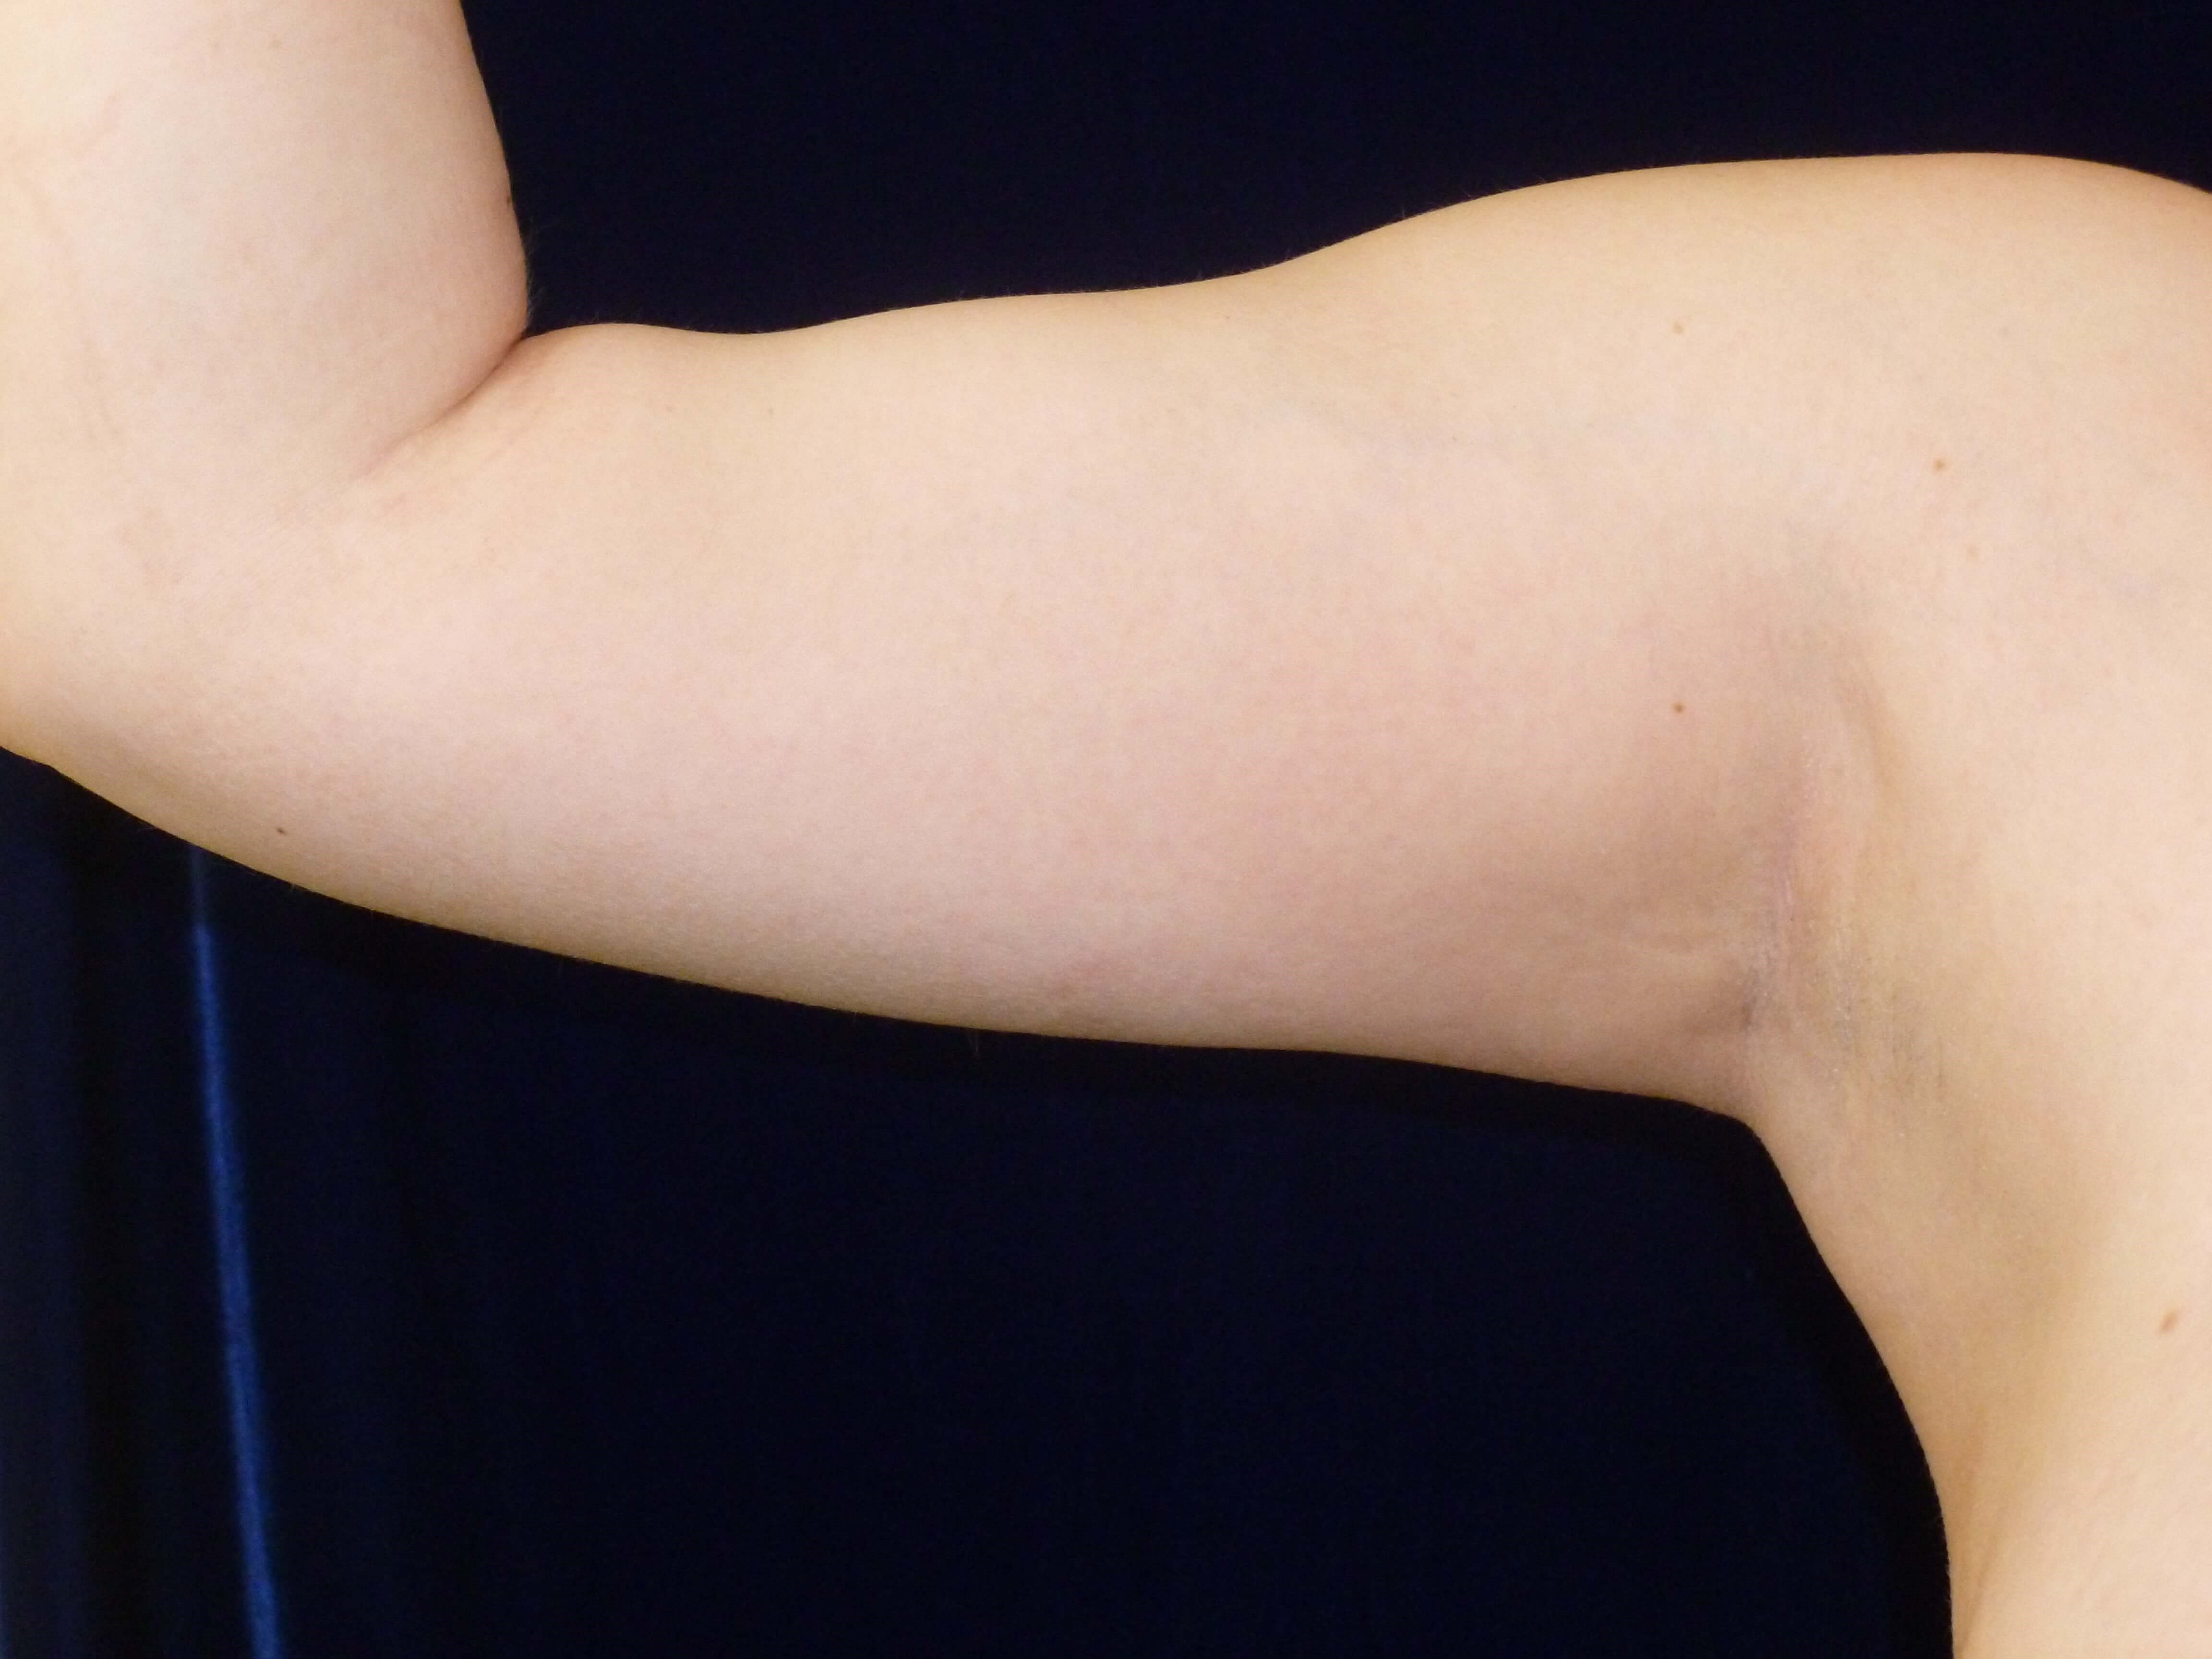 LIPOSUCTION: RIGHT ARM After lipo to arms